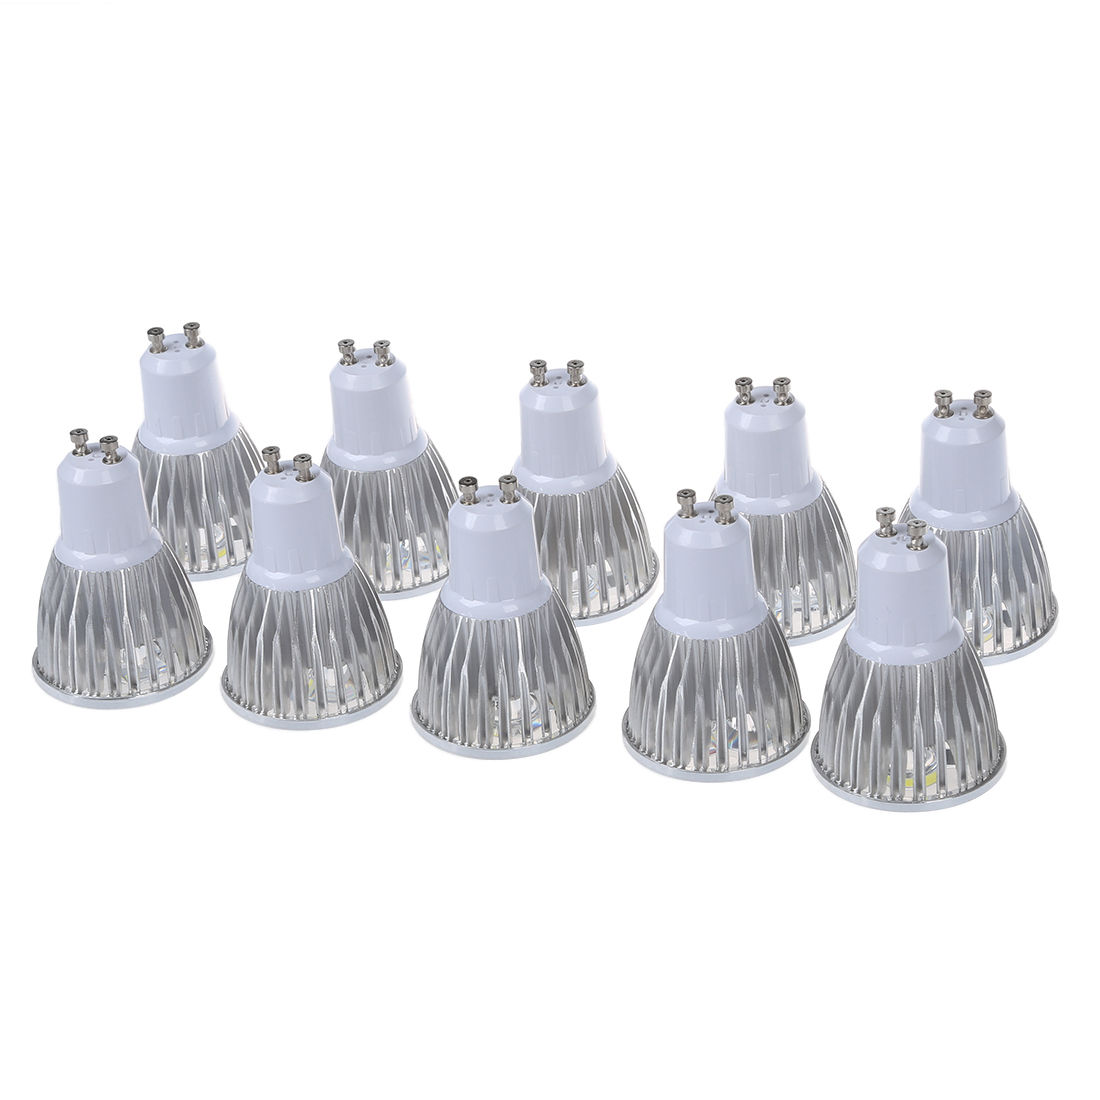 10 x 5W GU10 5 LED GU10 LED Bulb LED Light Bulb Cold White LED 450-Lumen AC95-240V